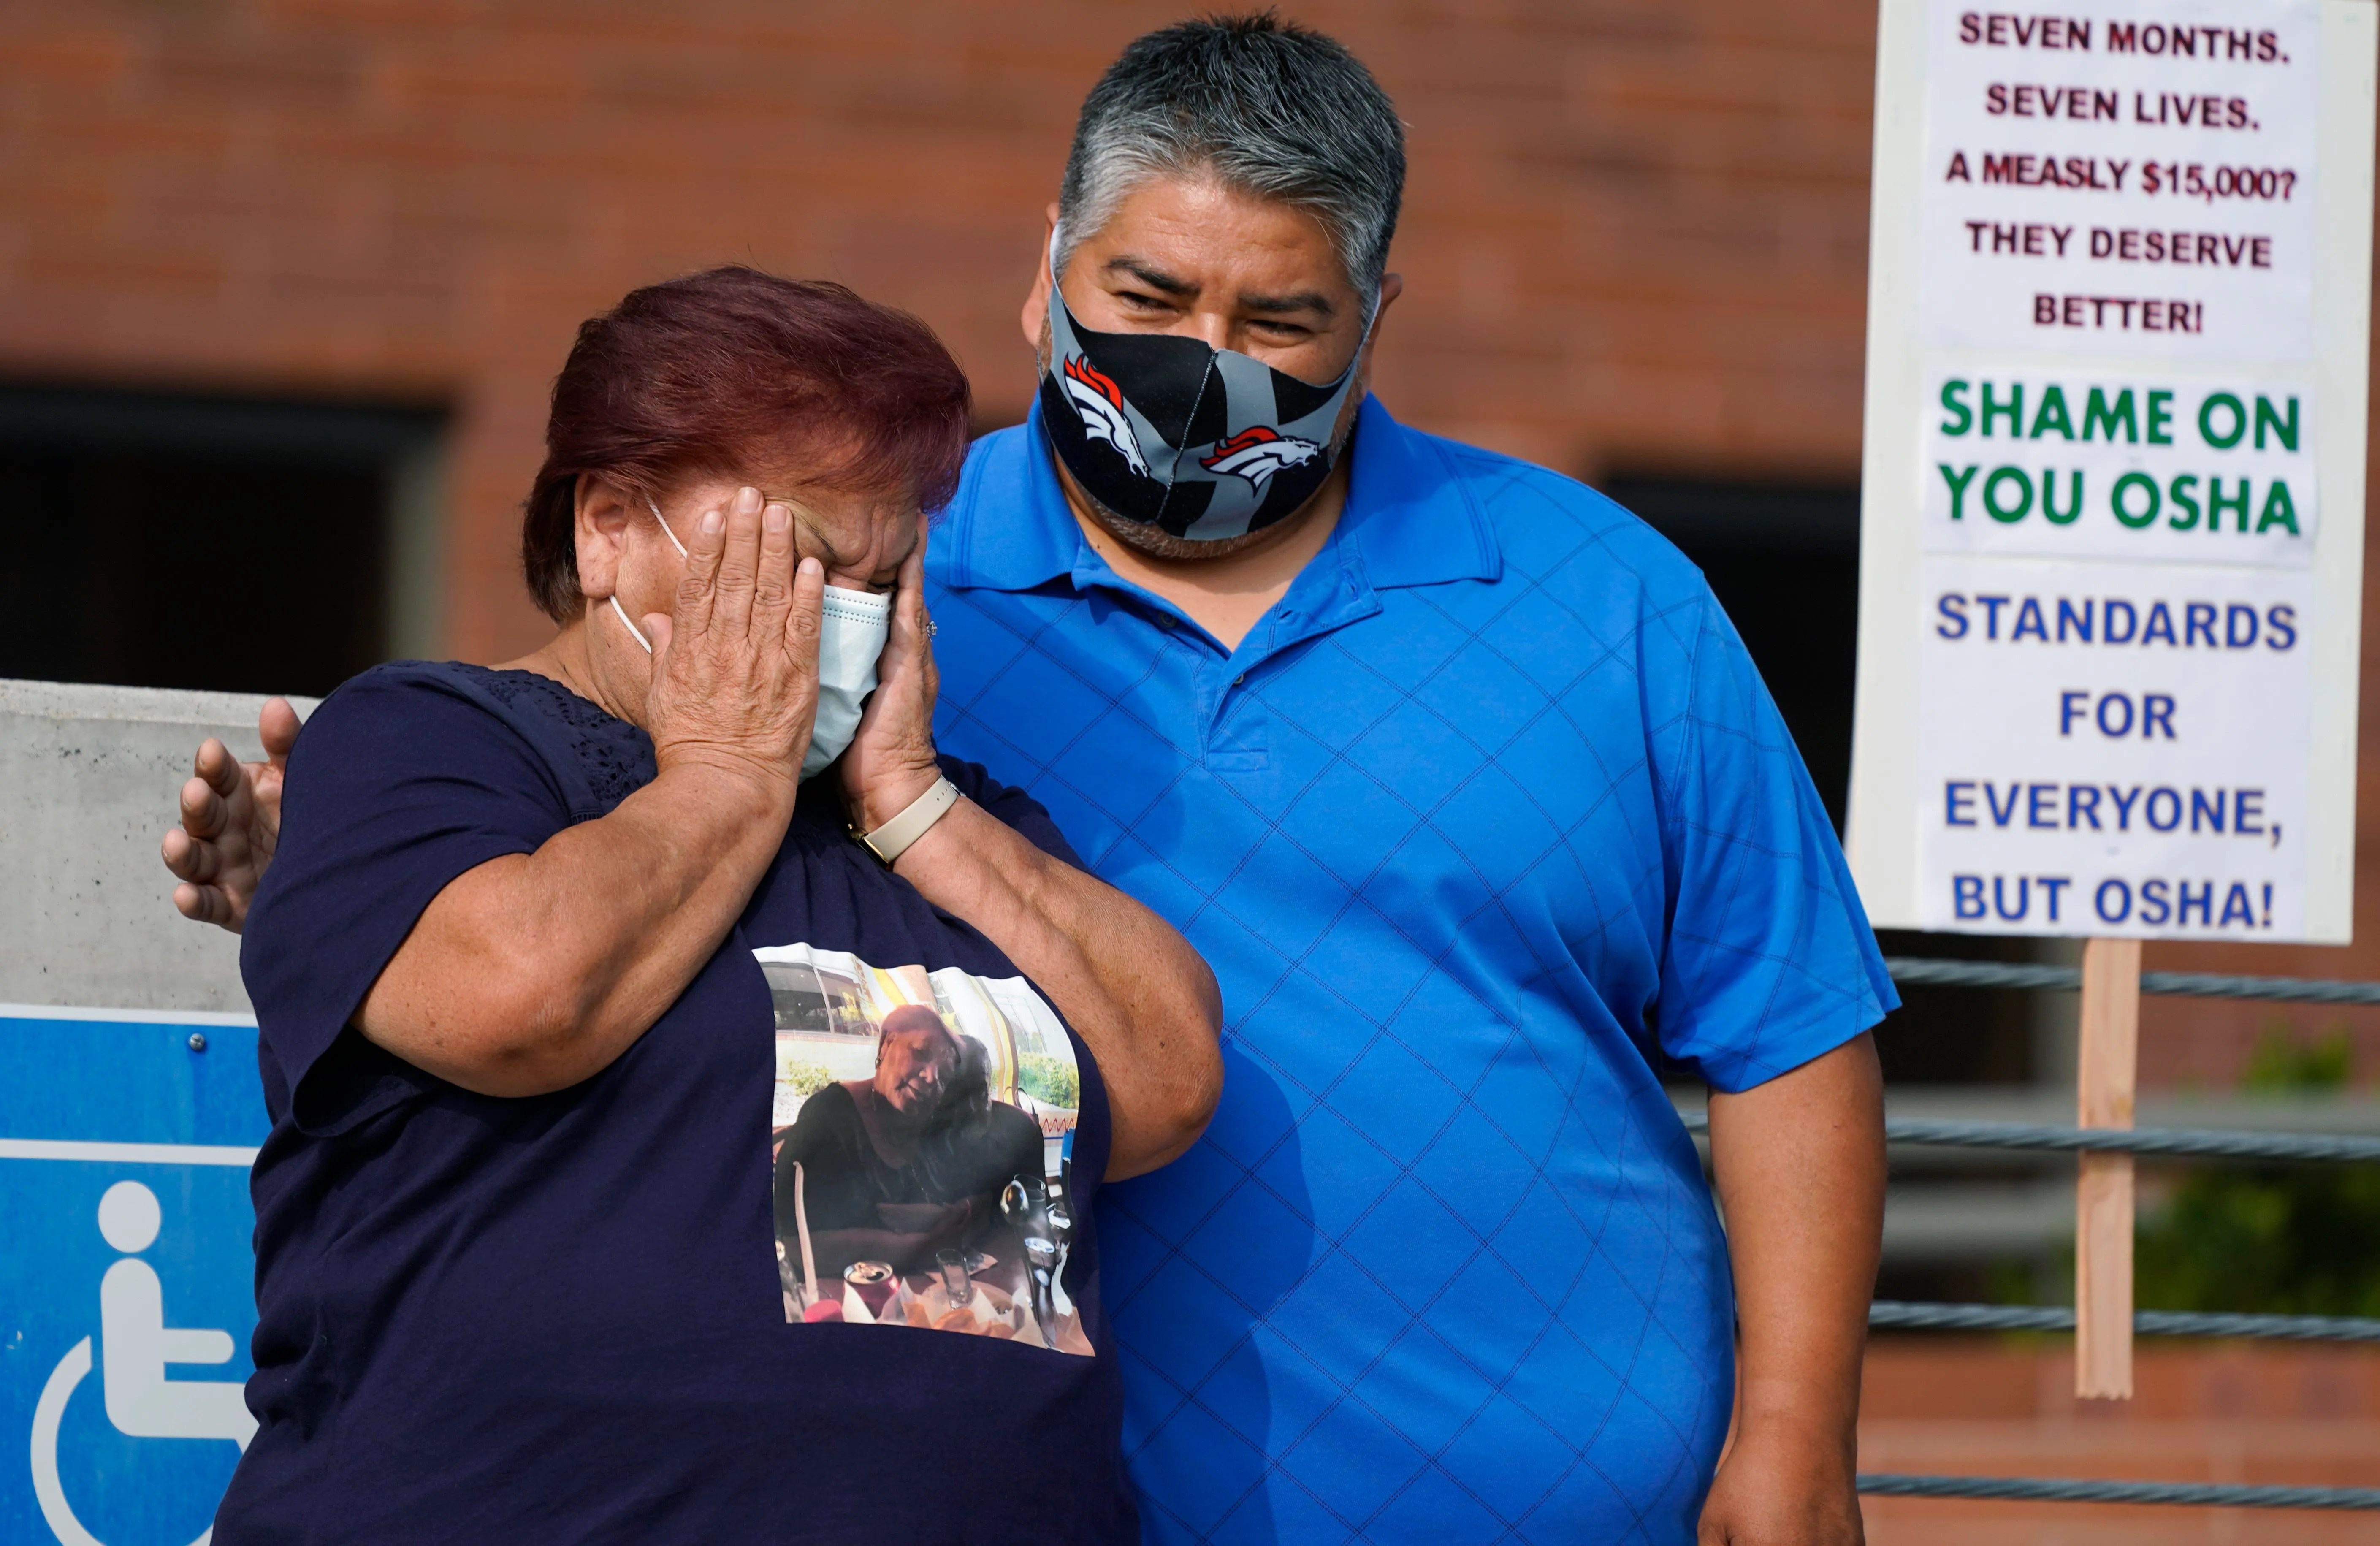 Widow Carolina Sanchez is comforted by her son, Saul, both of Greeley, Colo., during a protest staged by the union representing employees at a meatpacking plant where six workers died of COVID-19 and hundreds more were infected this past spring, outside OSHA offices in downtown Denver on Wednesday. Carolina Sanchez's husband was the first worker to die of COVID at the JBS Foods plant in Greeley.